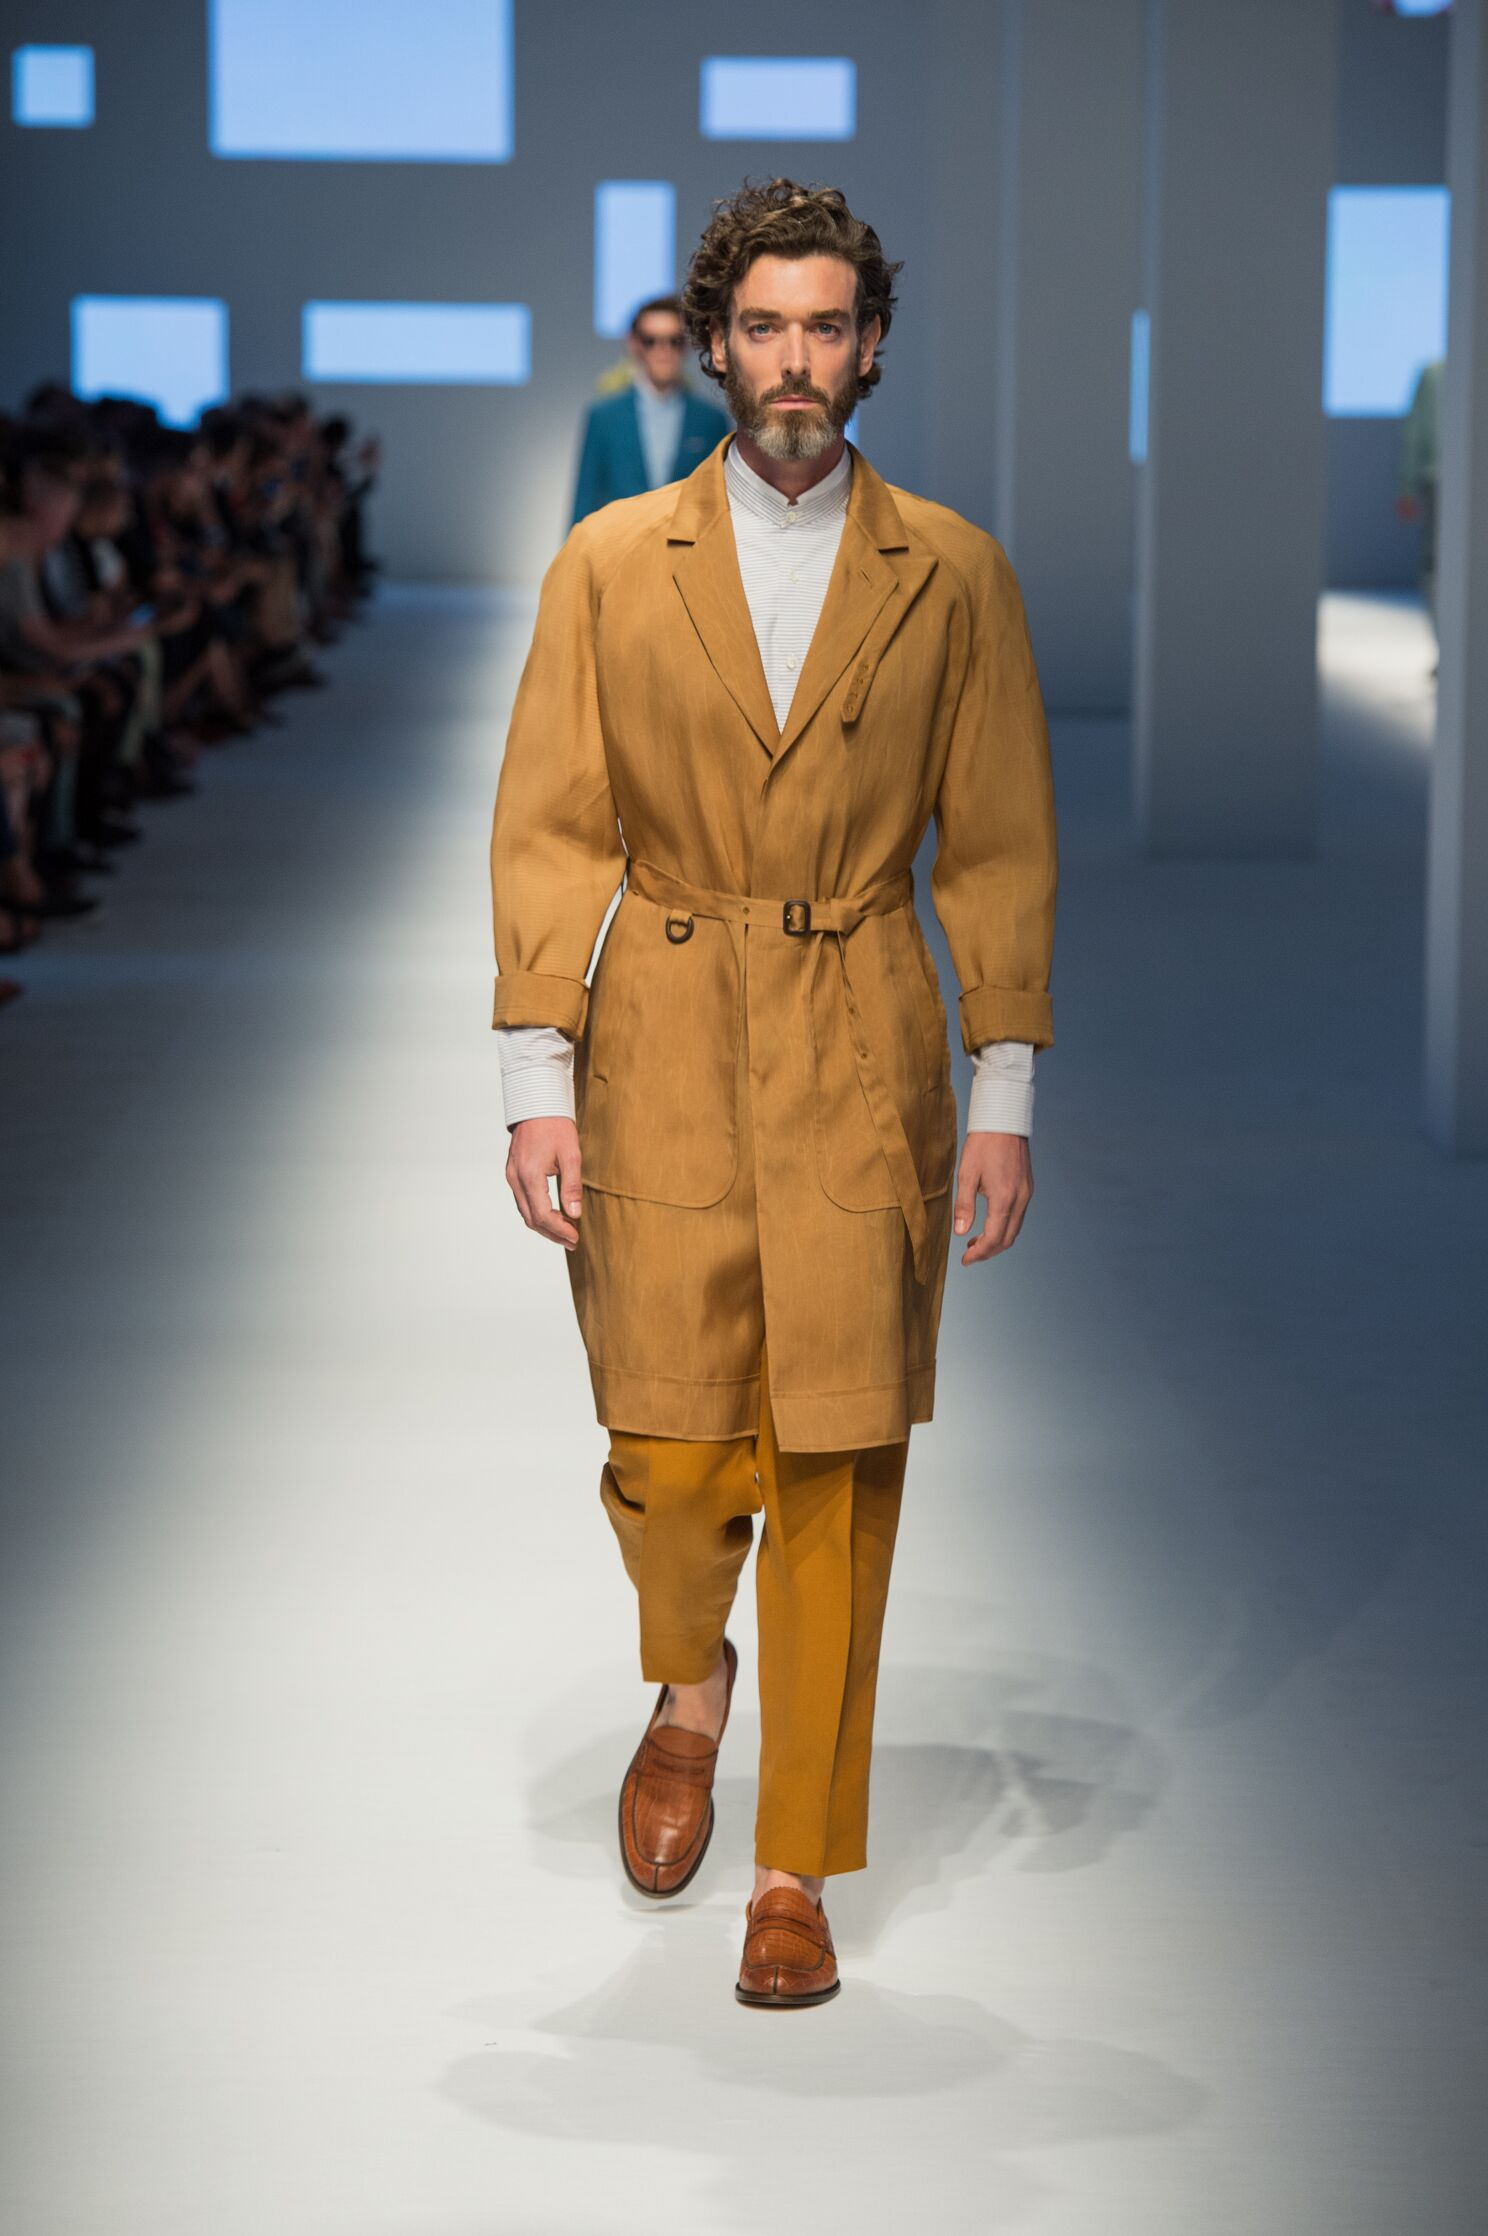 Fashion Menswear Canali Collection Catwalk